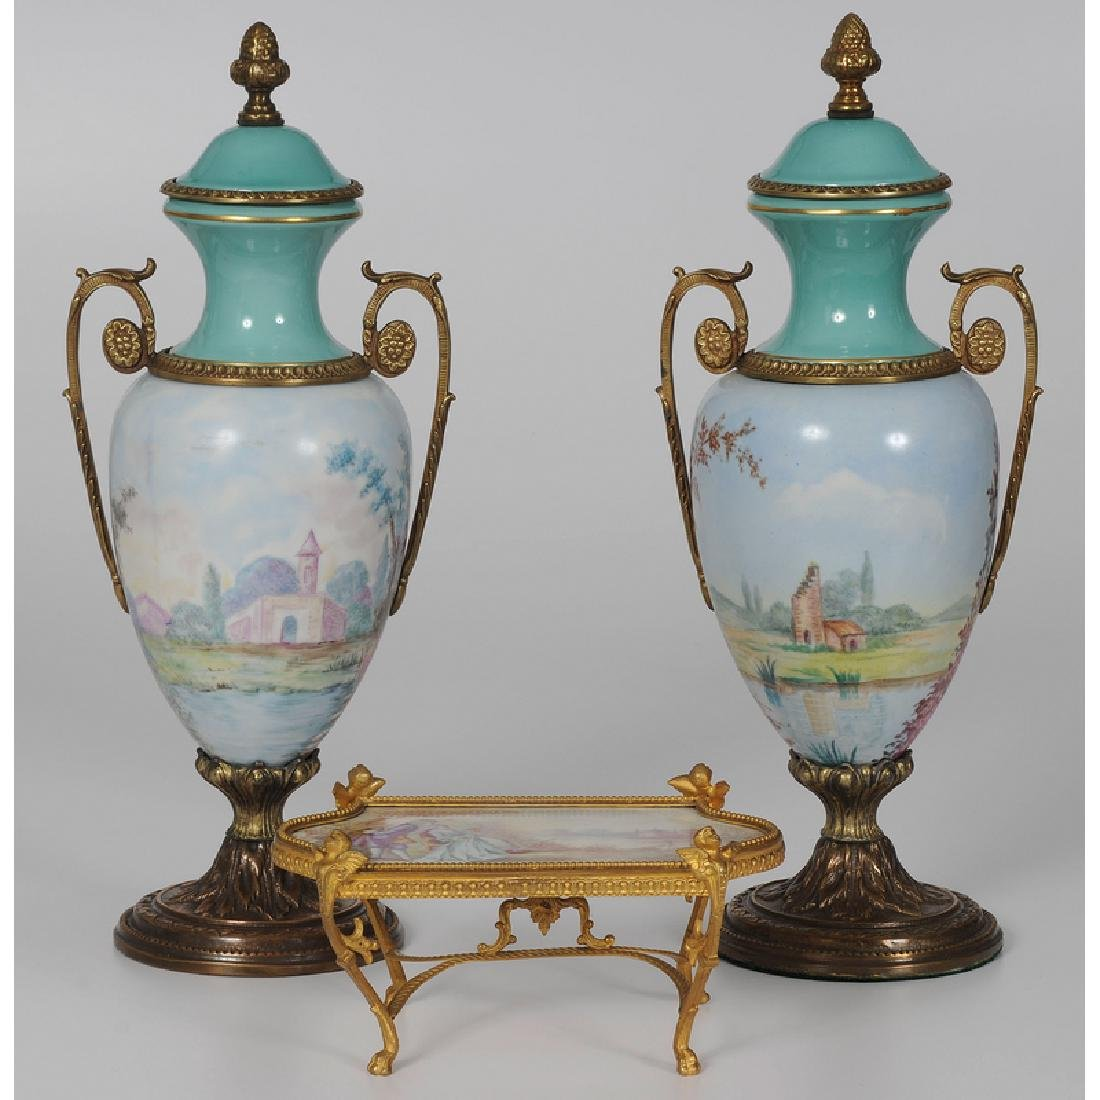 Sèvres Style Urns and Diminutive Table - 2